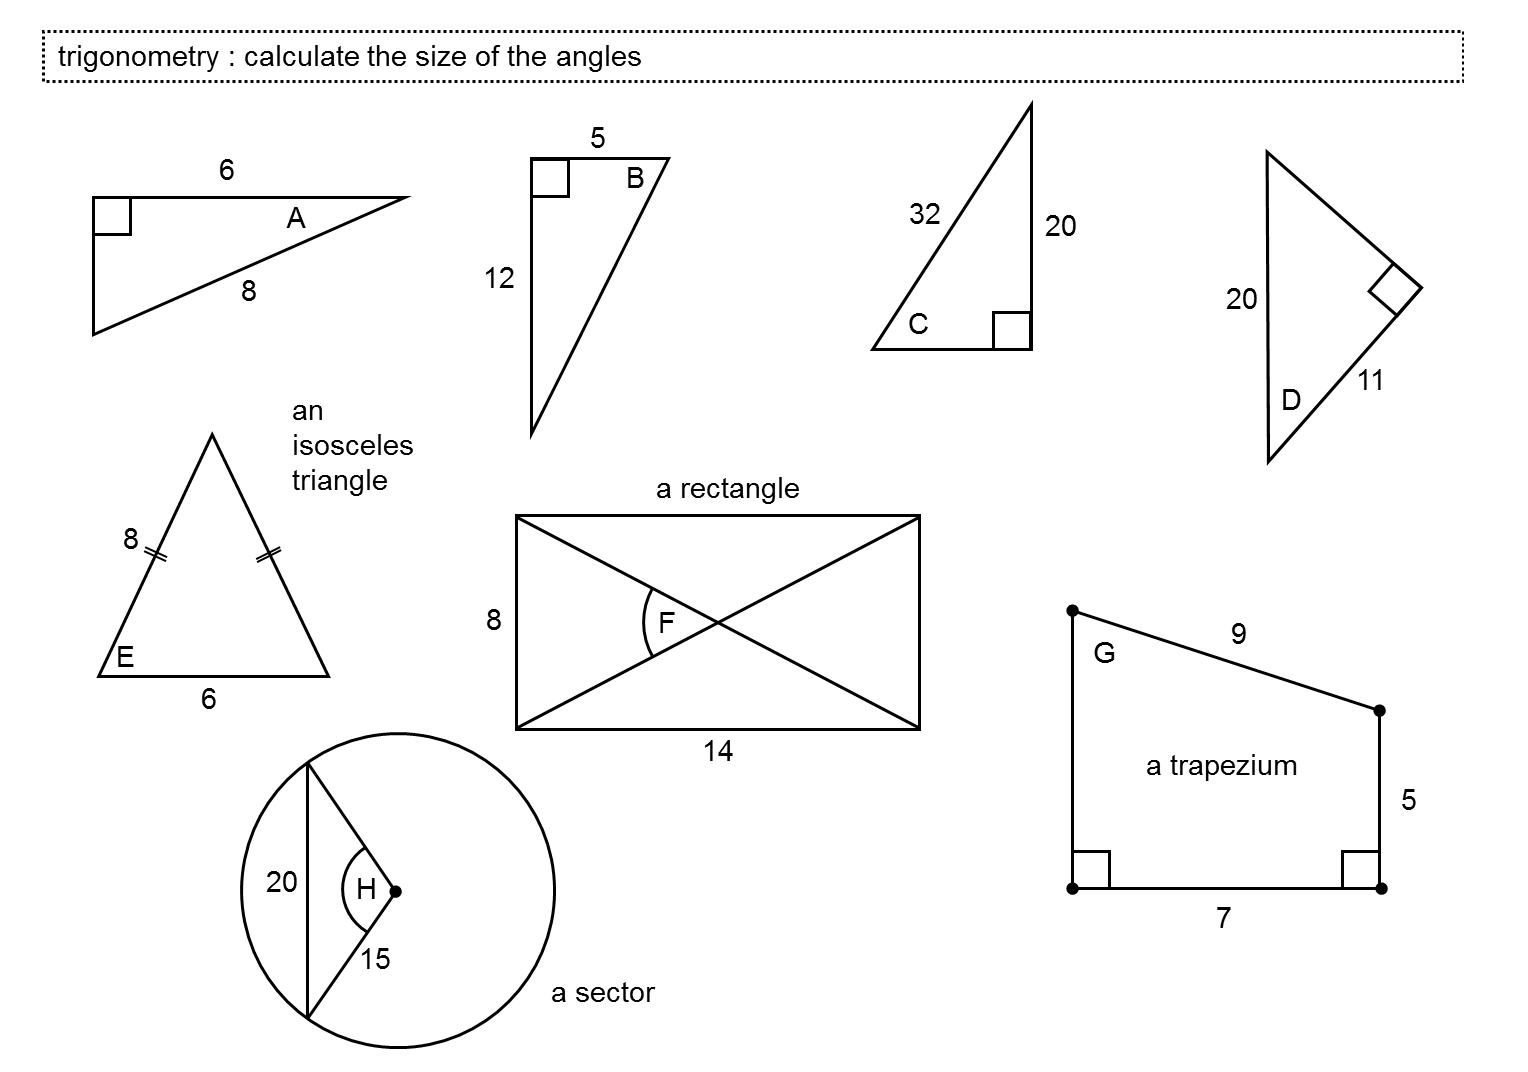 worksheet Basic Trigonometry Worksheets trigonometry in right angled triangles miss norledges storeroom calculate angle size don steward